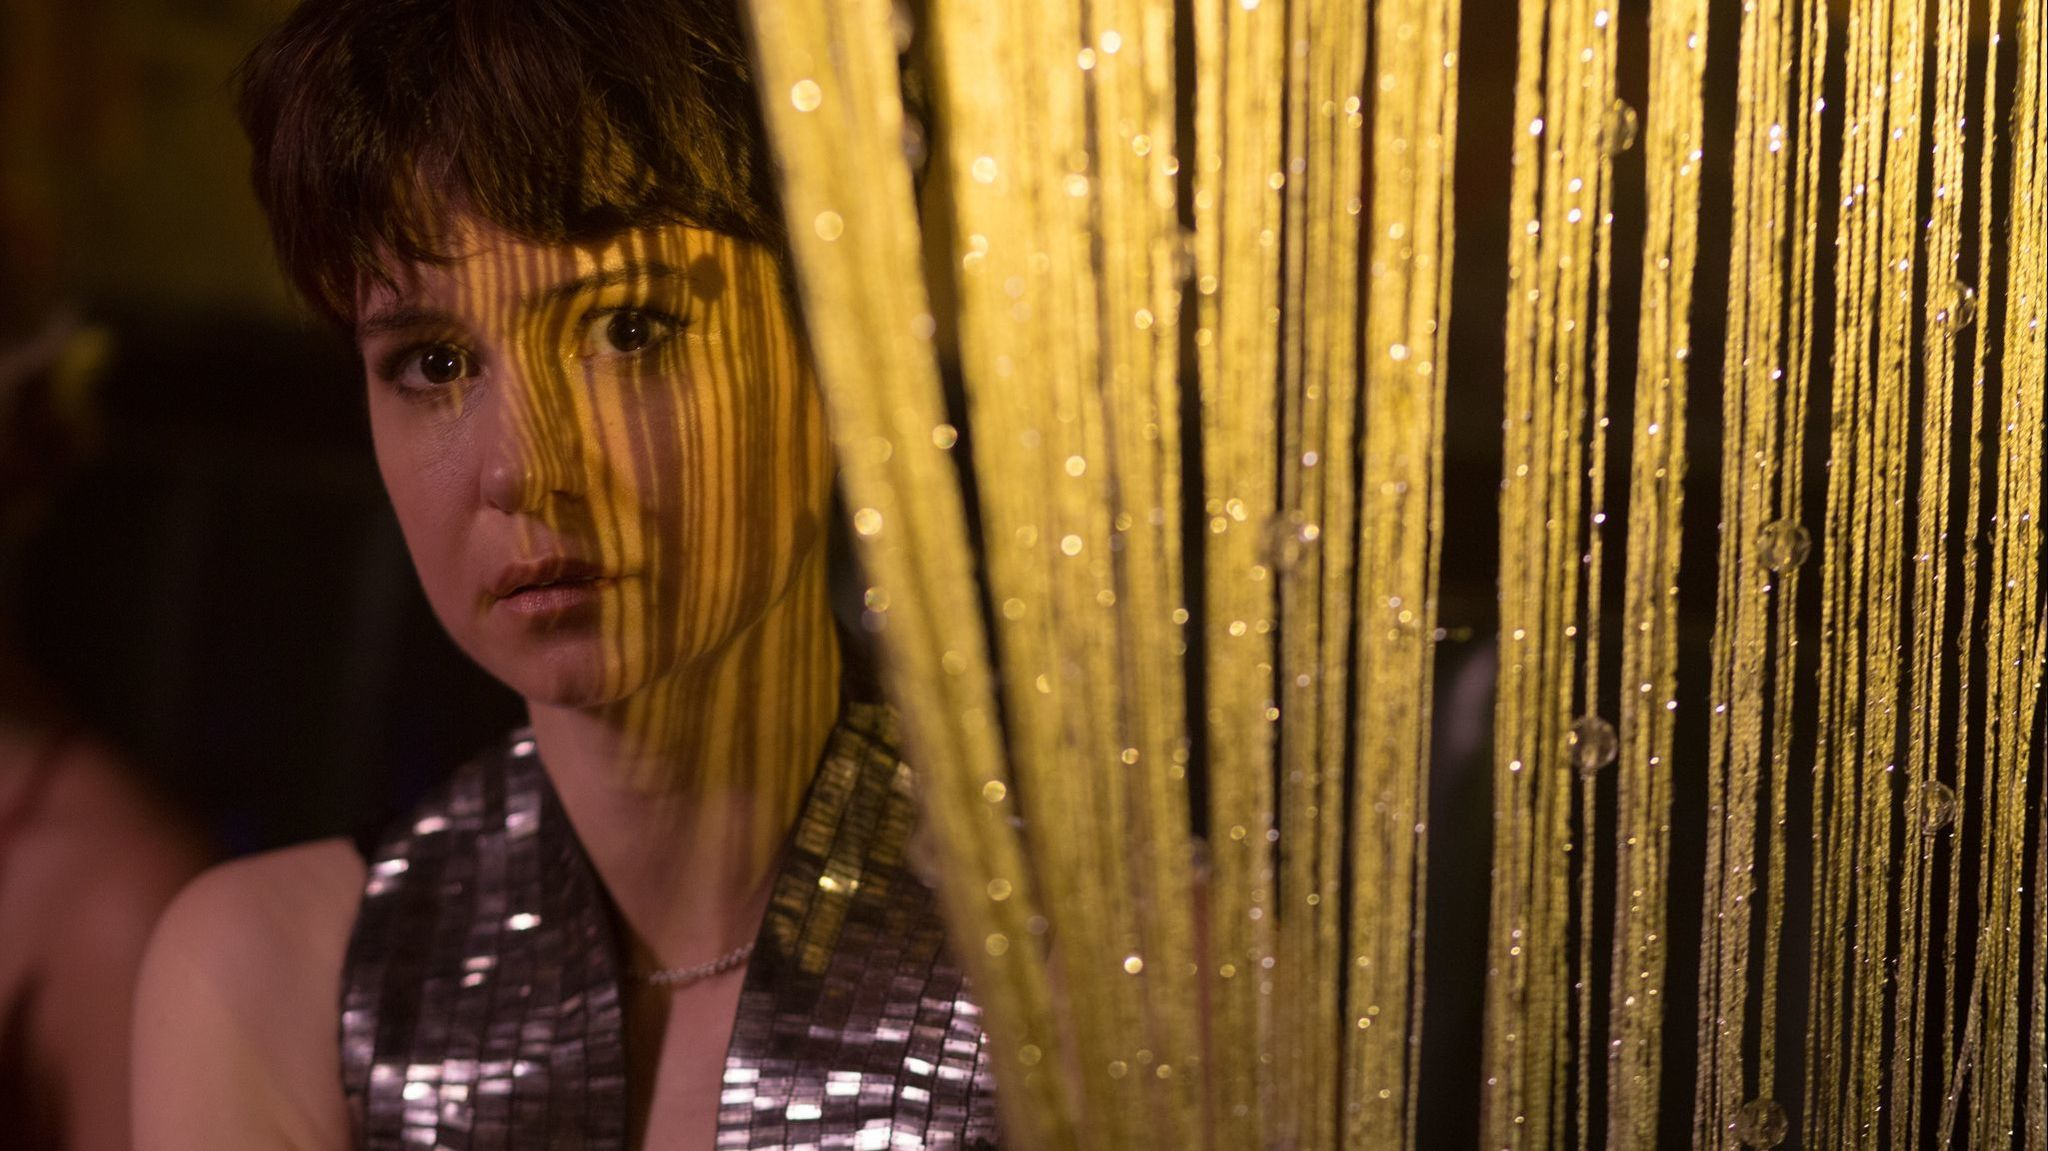 Review: Katherine Waterston is a marvel in overly complex drama 'State Like Sleep'